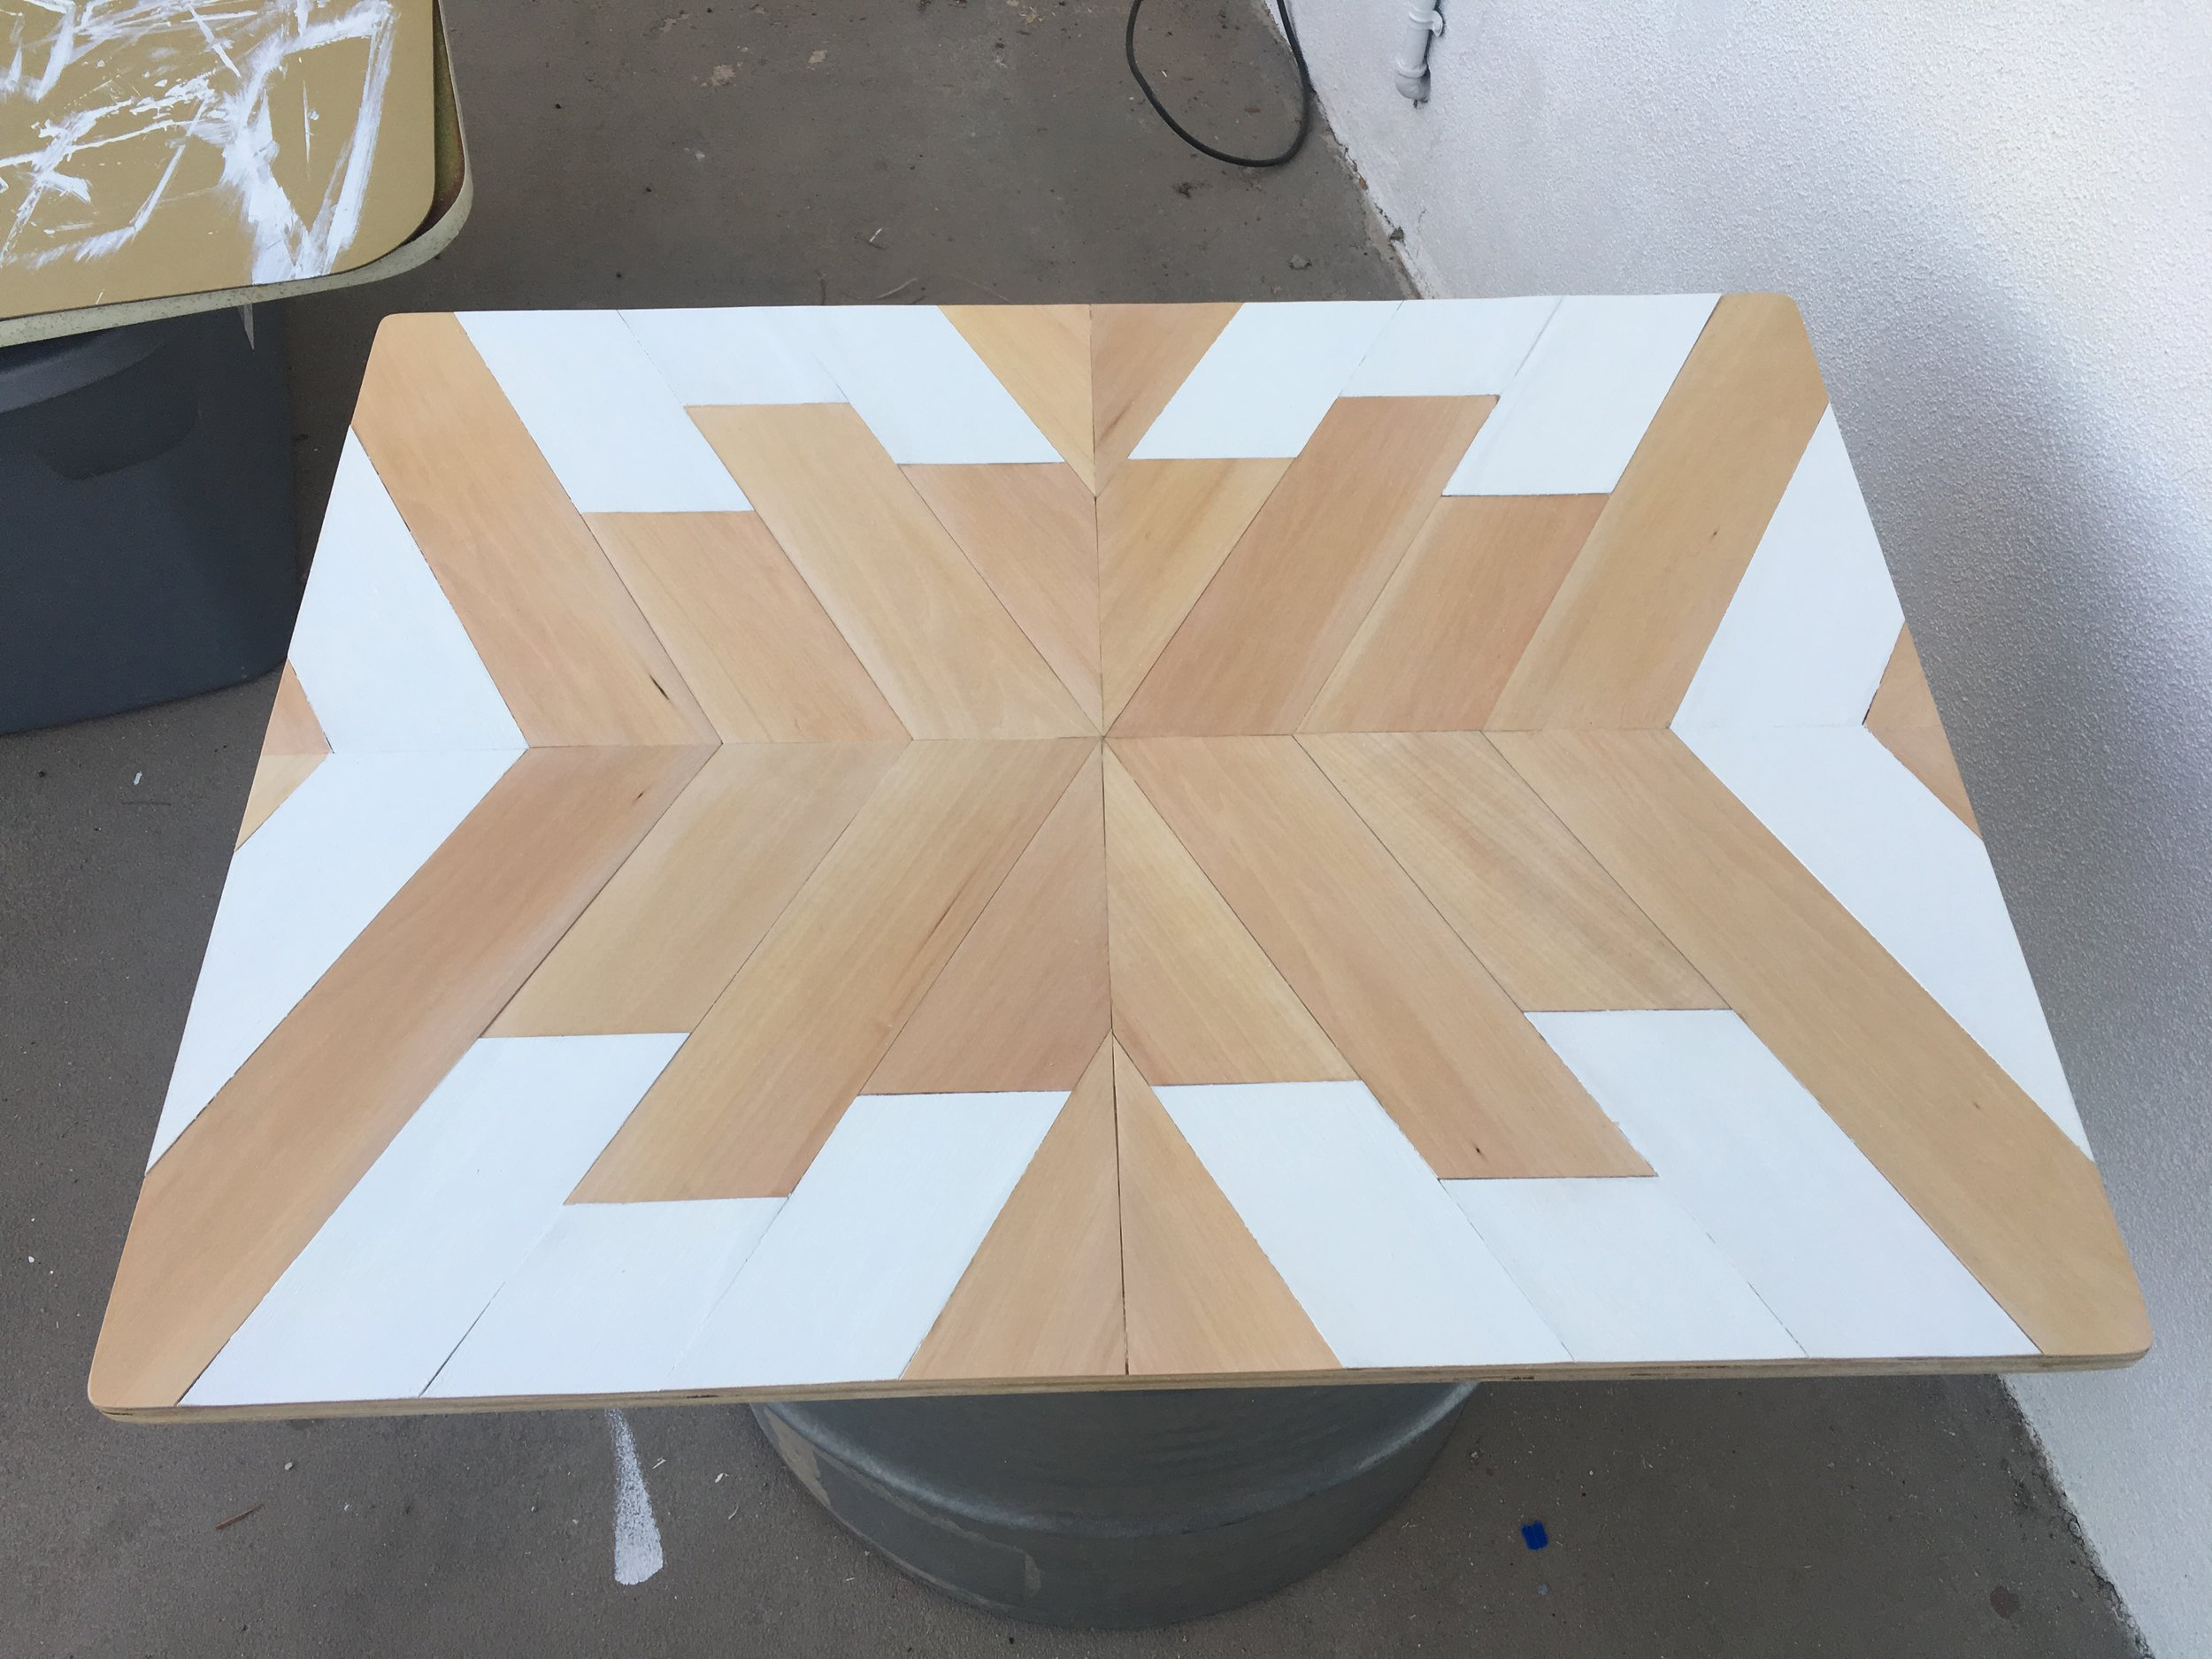 Putting an extra thick coat of poly on table